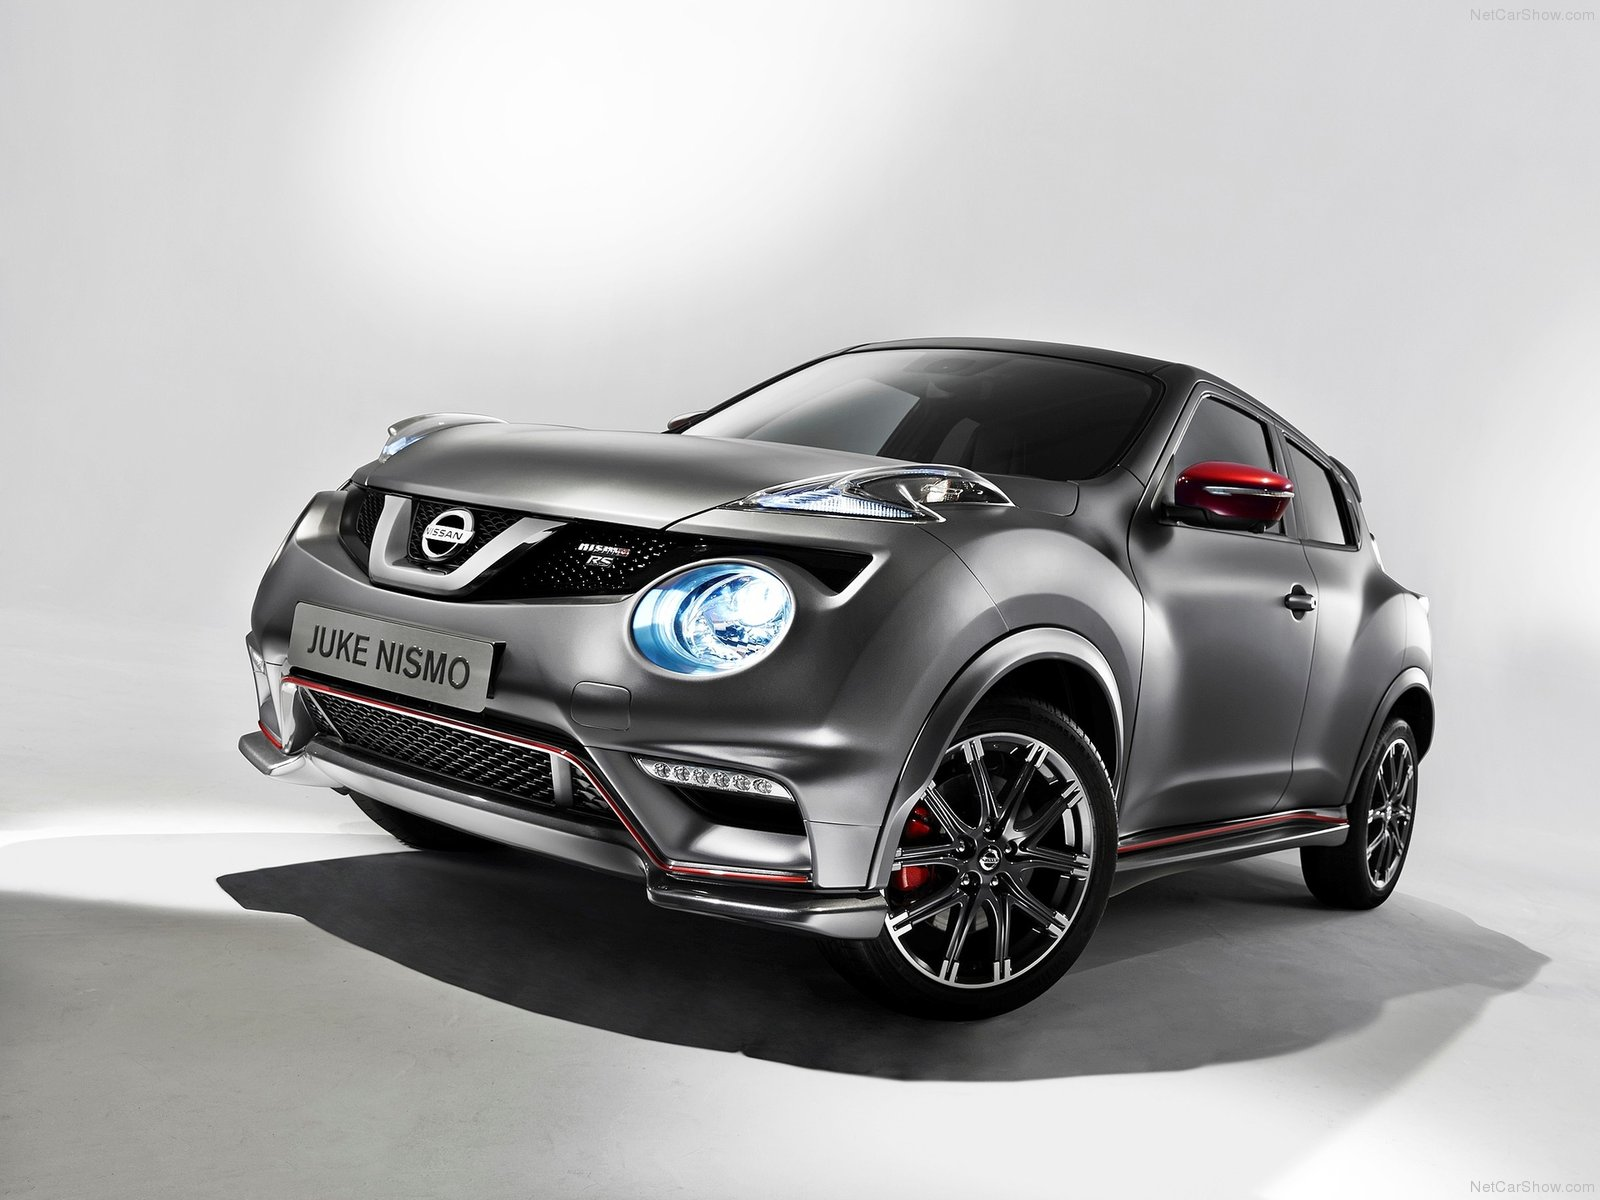 Nissan Juke Nismo RS photo 111218